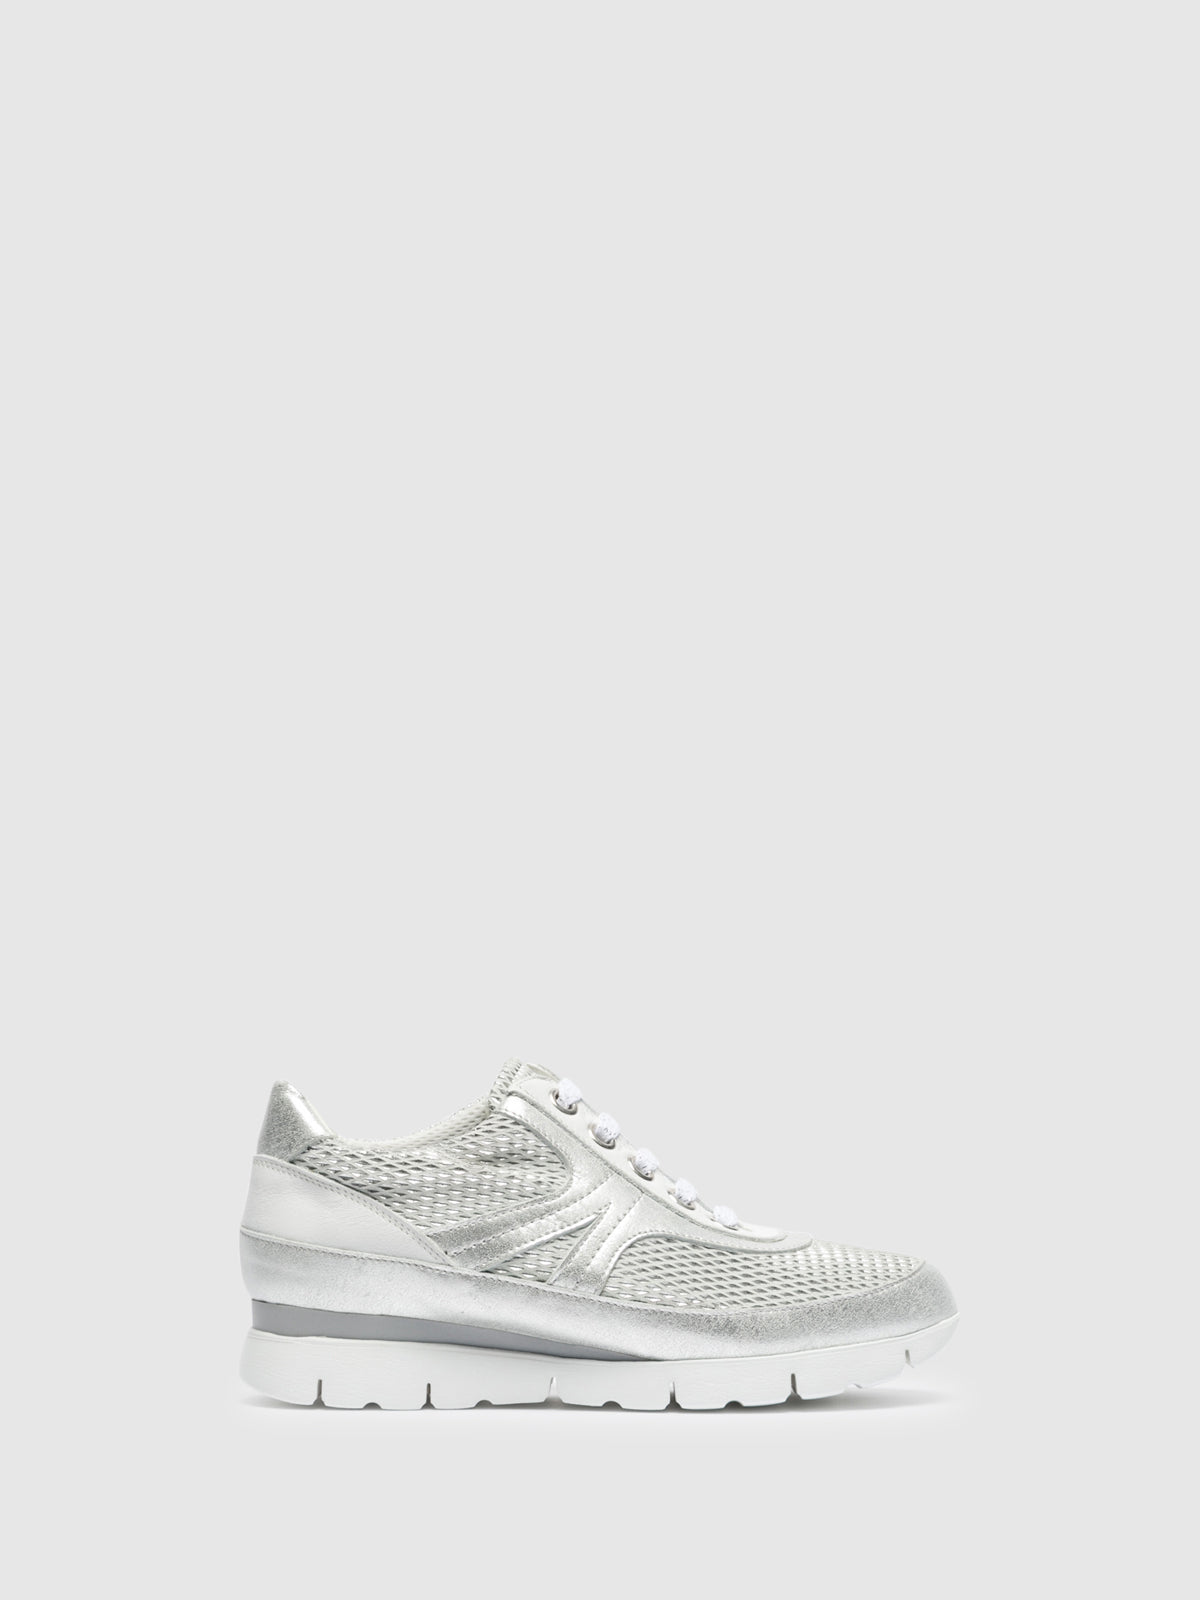 The Flexx White Lace-up Trainers